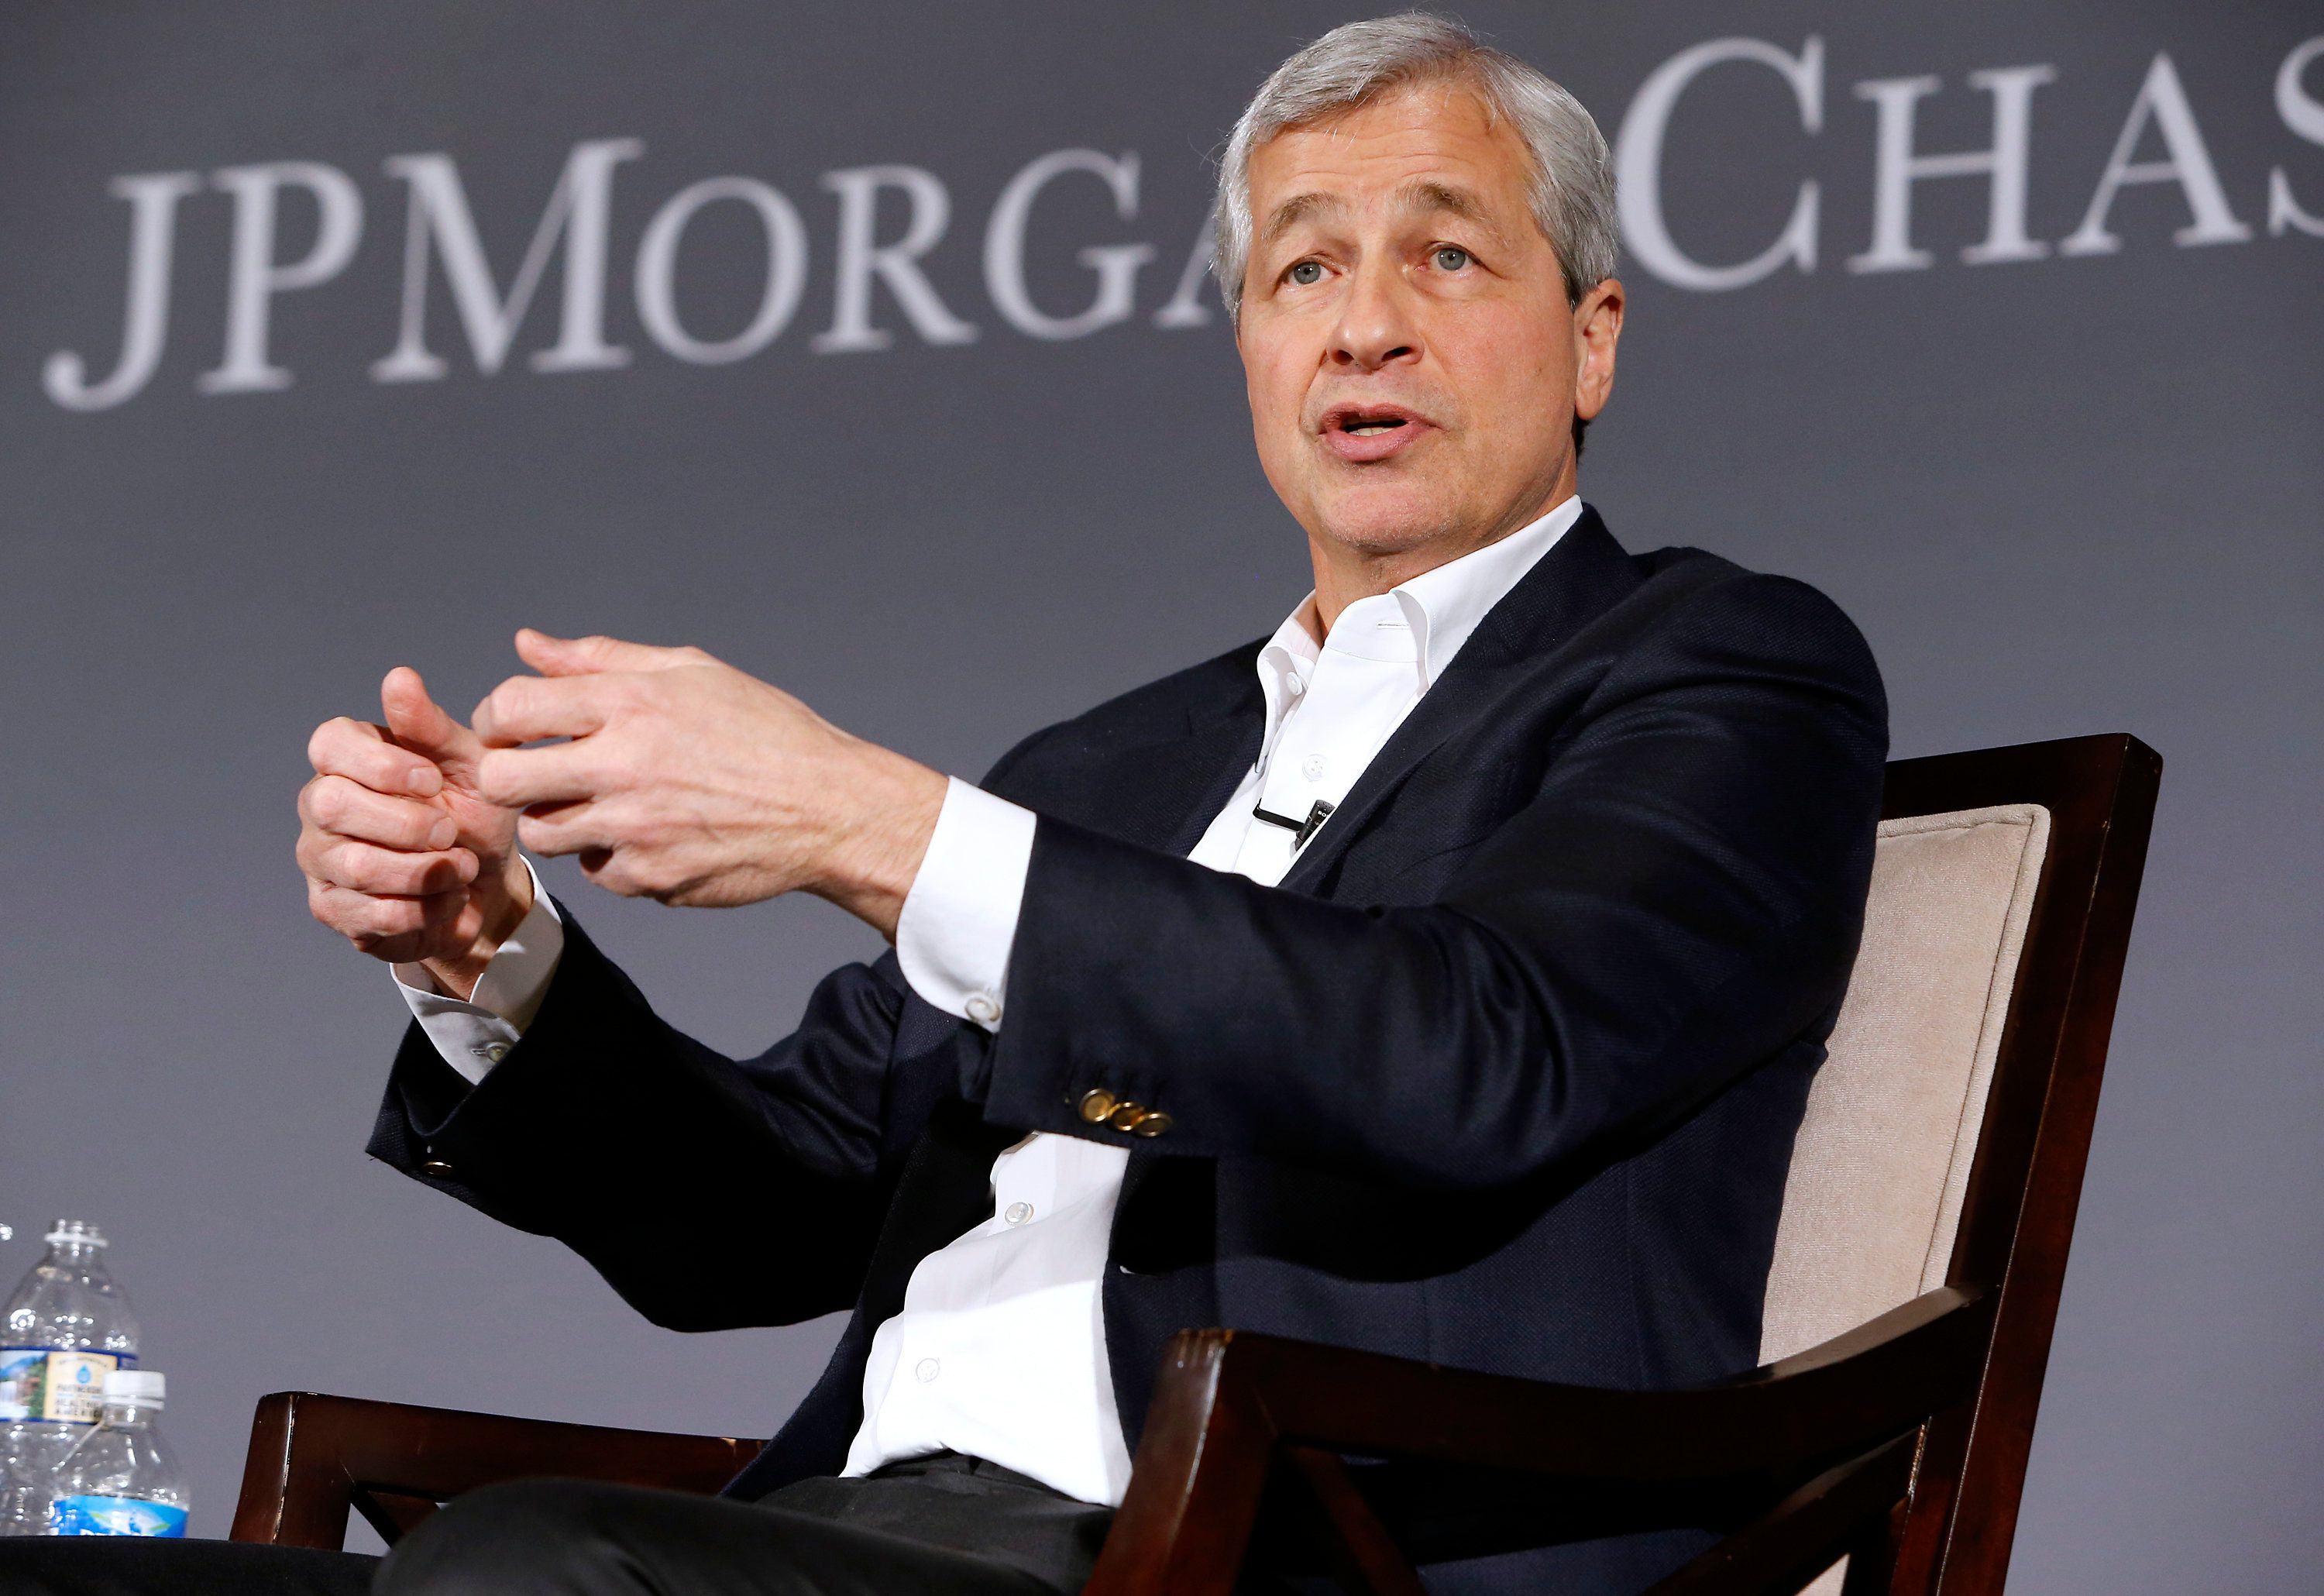 Jamie Dimon, Steve Mnuchin And Big Bank CEOs Set To Attend Saudi Conference Despite Journalist's Disappearance